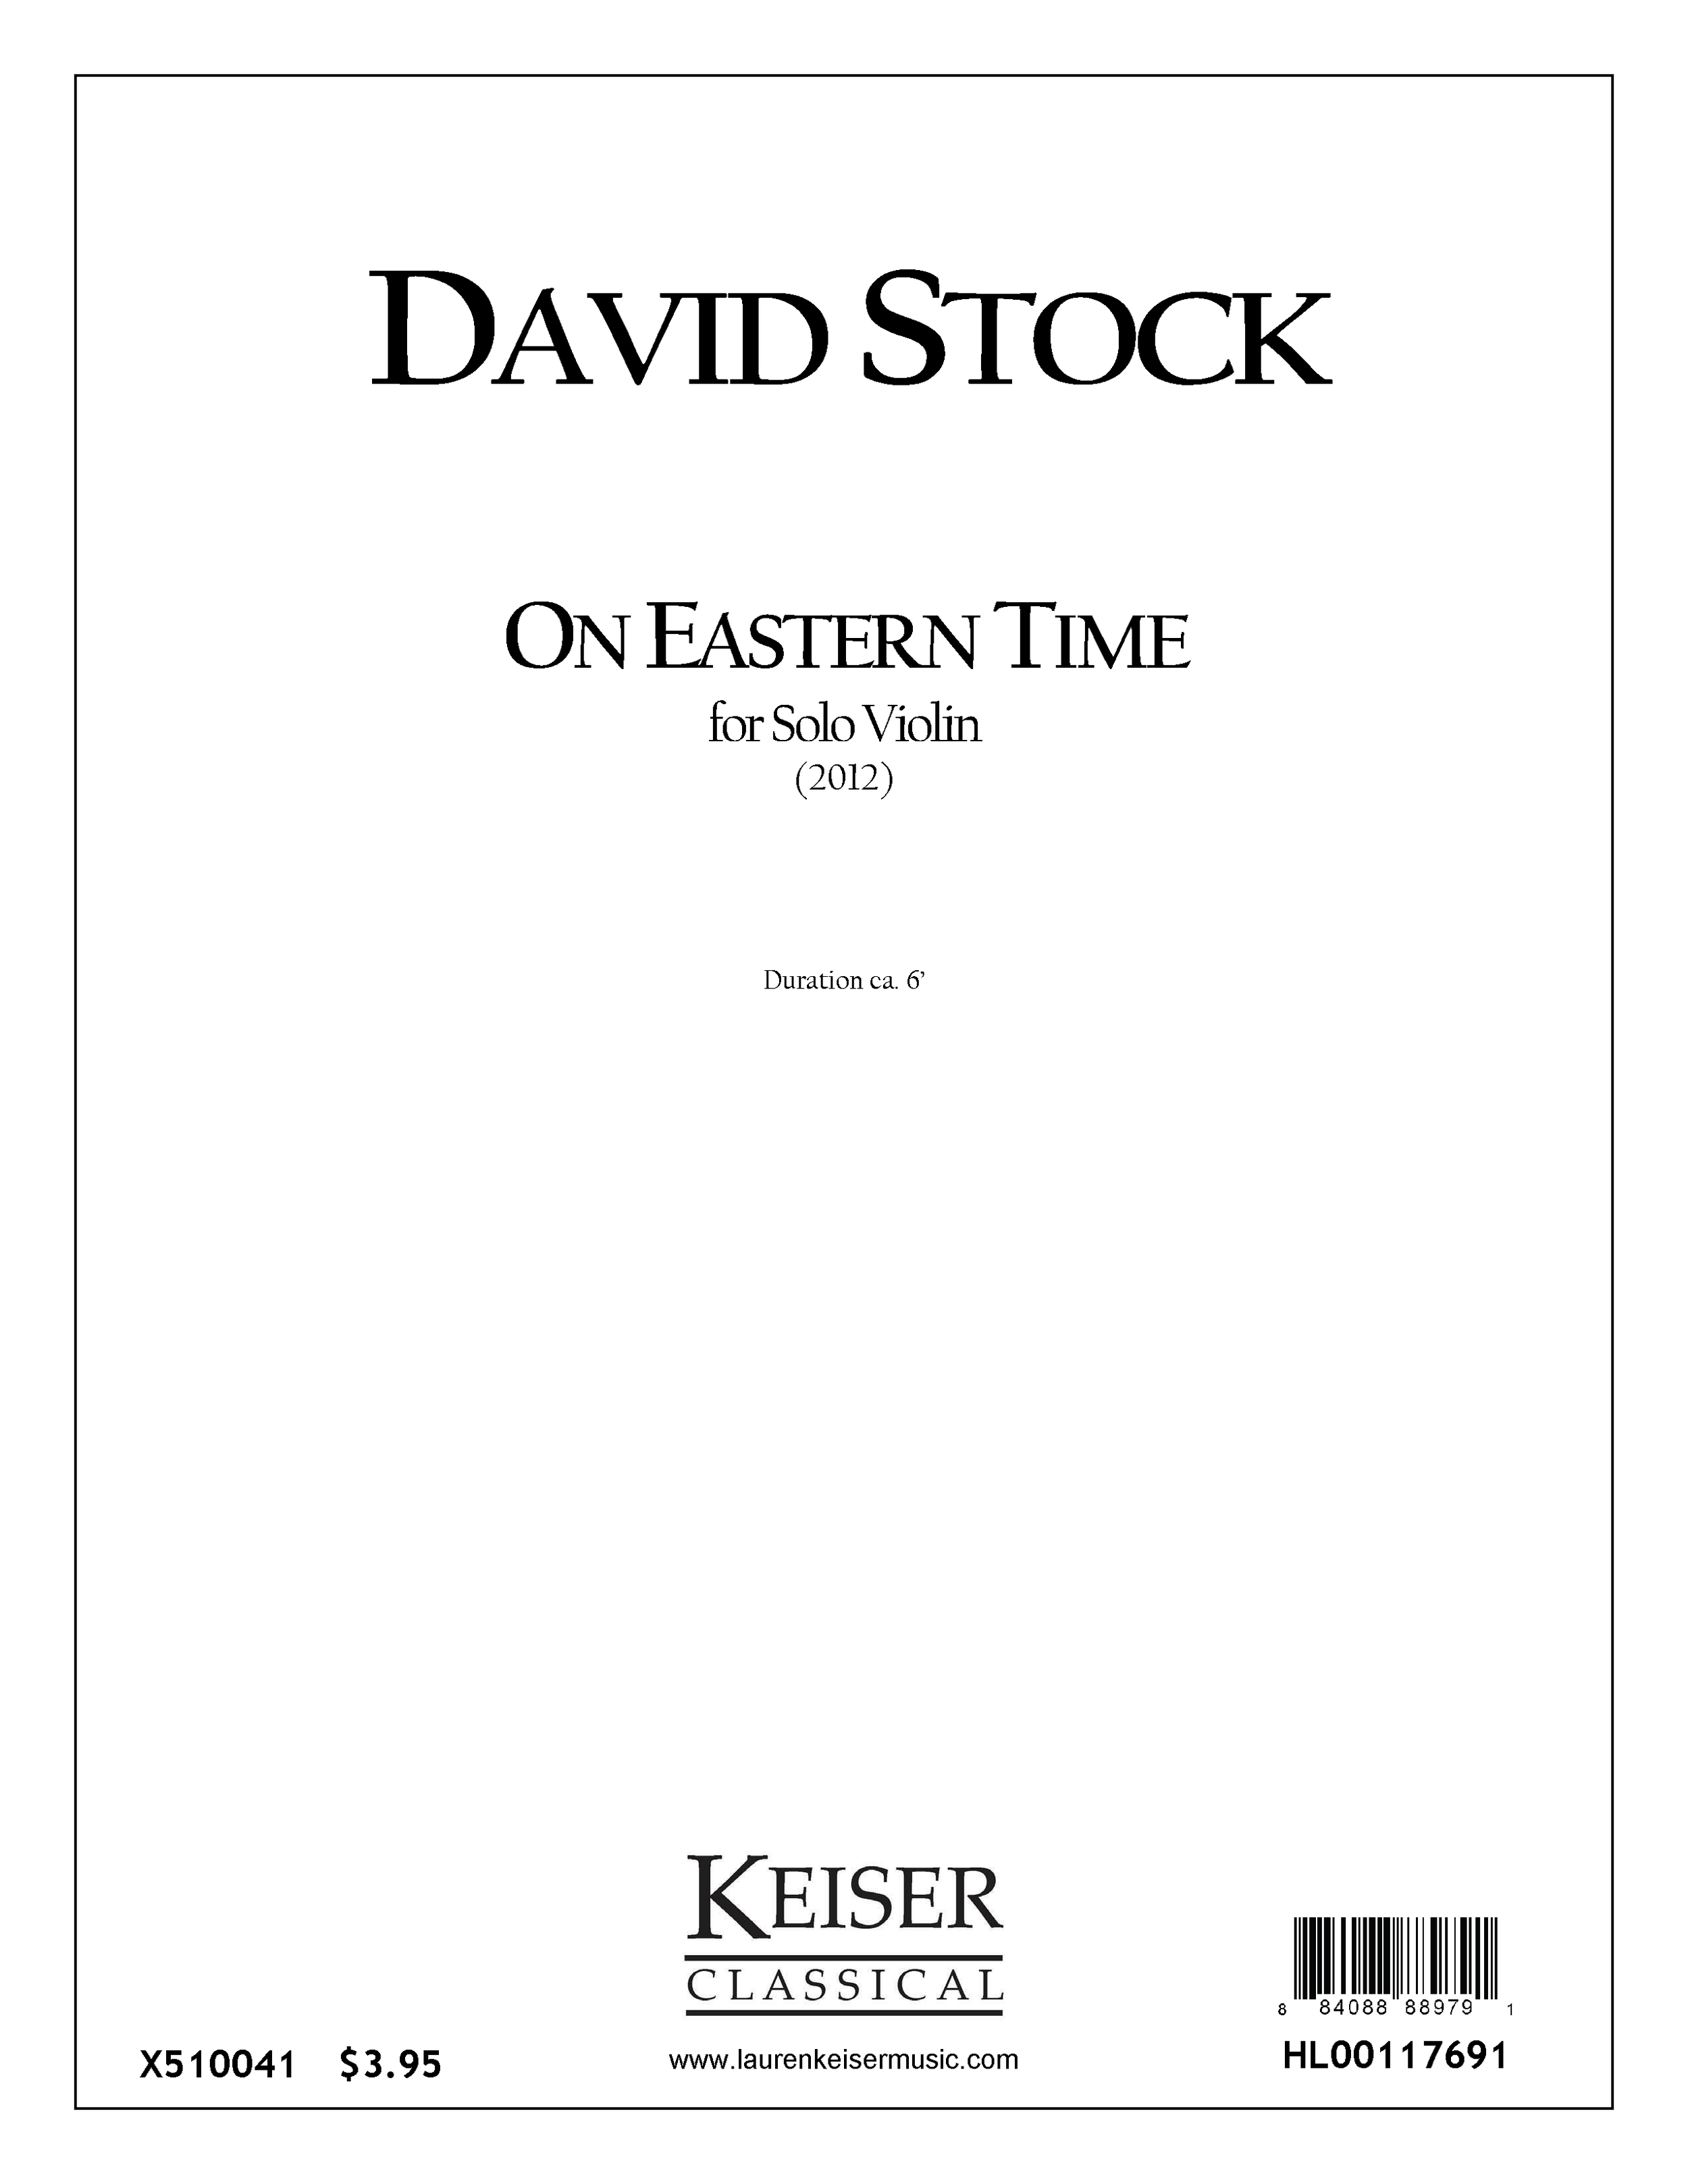 On Eastern Time (2012)  - Violin SoloRent/Buy: Keiser Music